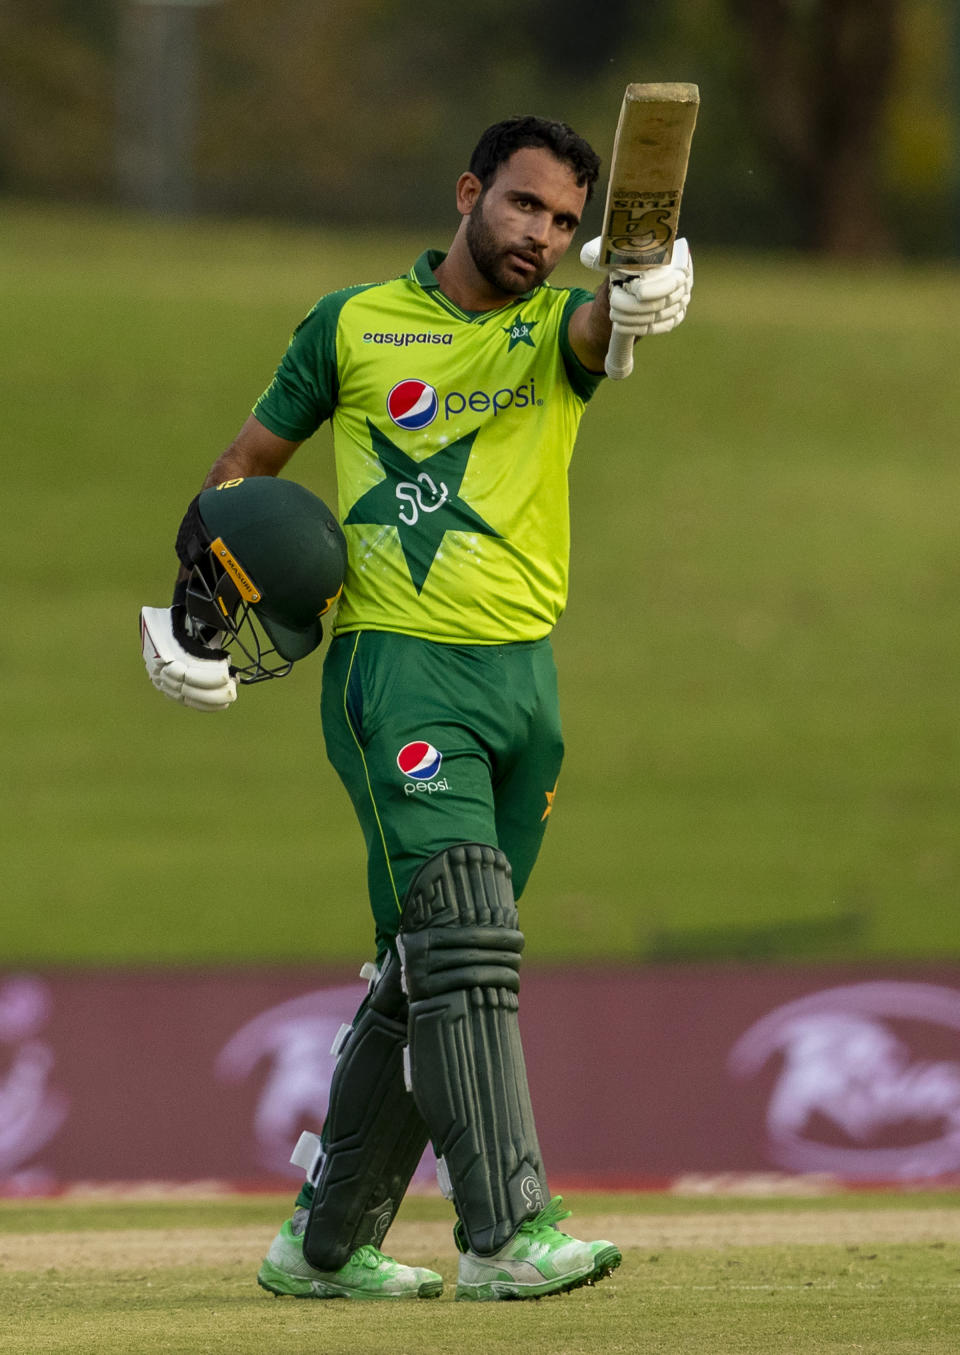 Pakistan's batsman Fakhar Zaman raises his bat to celebrate scoring a half century during the fourth and final T20 cricket match between South Africa and Pakistan at Centurion Park in Pretoria, South Africa, Friday, April 16, 2021. (AP Photo/Themba Hadebe)